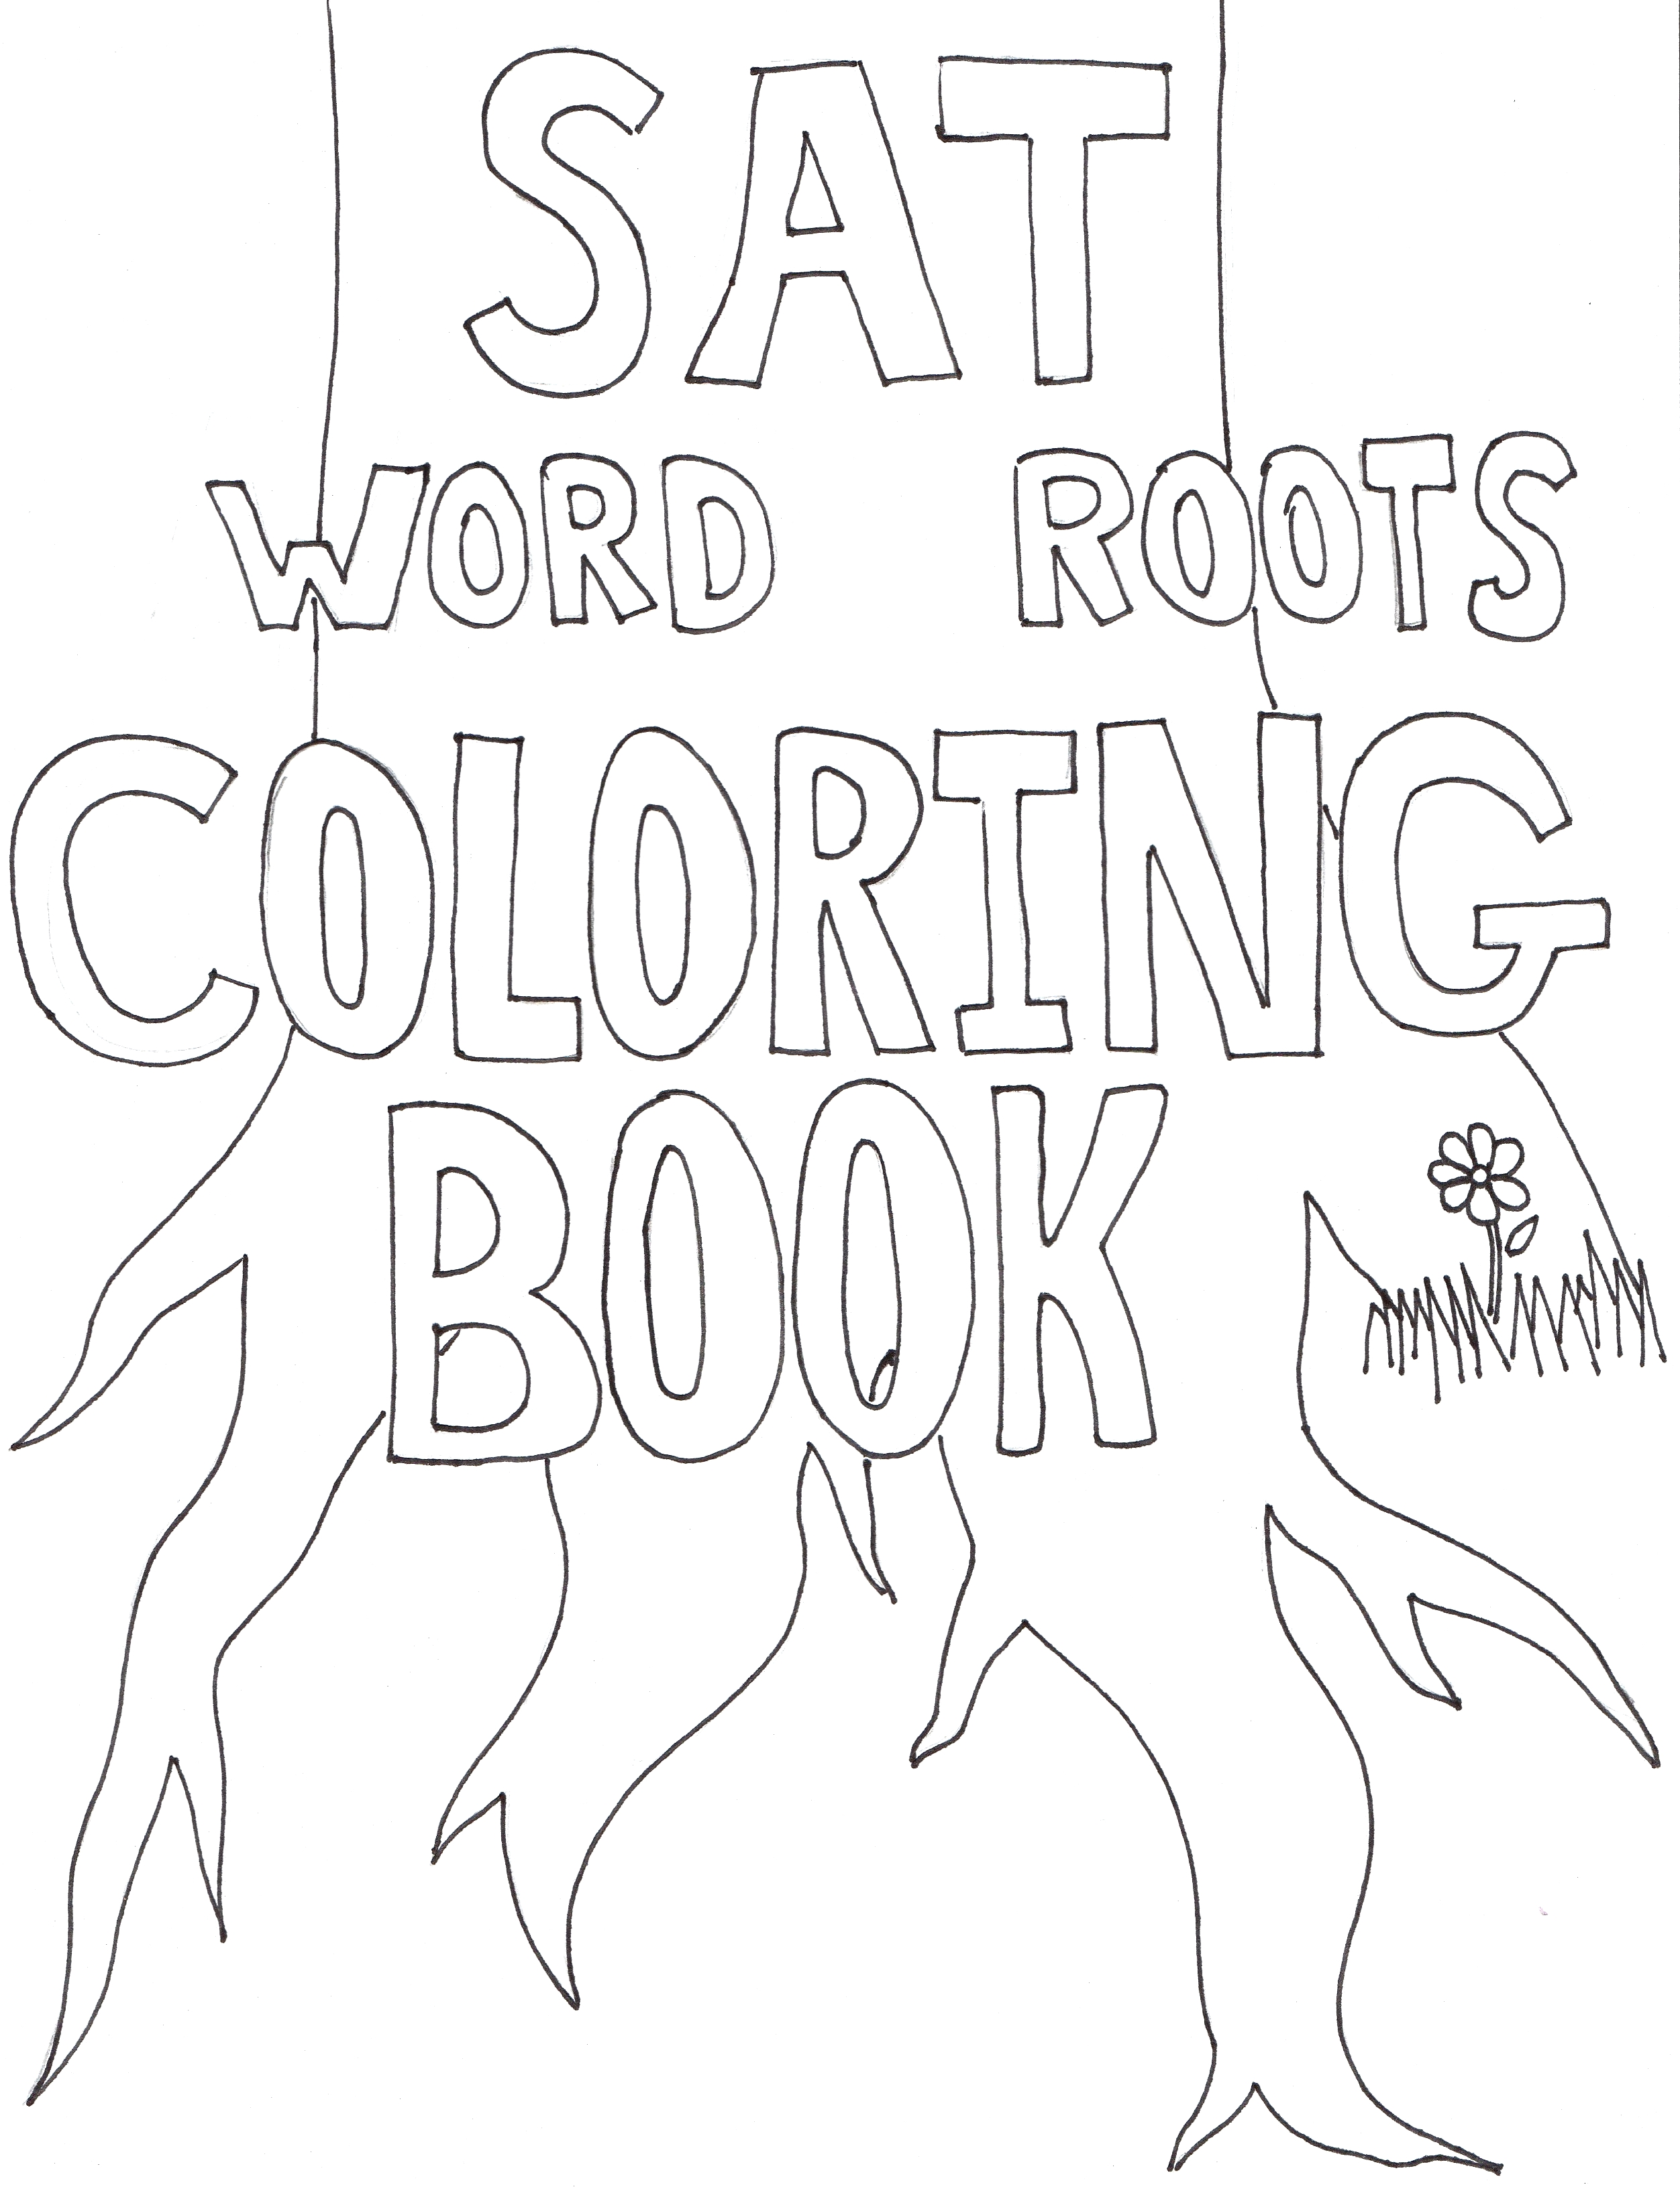 Word Roots Coloring Book | College Coached